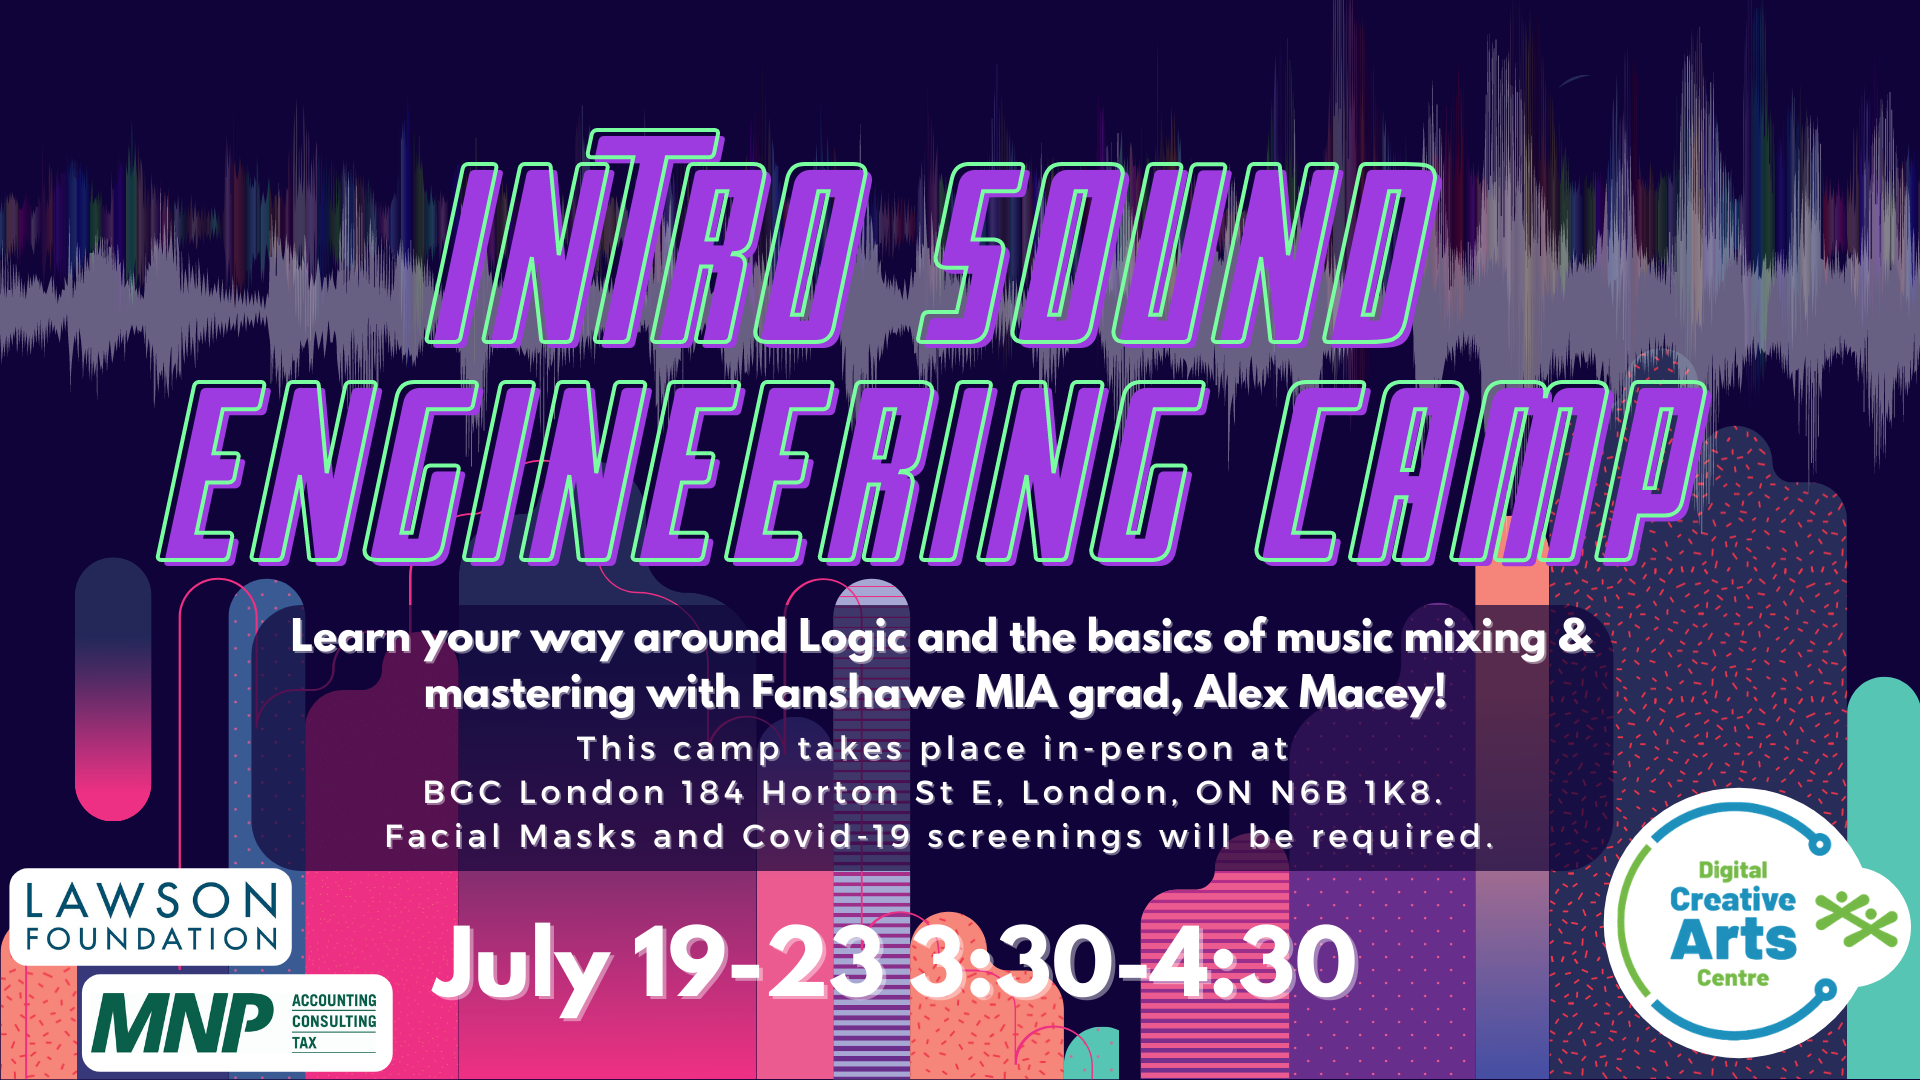 Intro to Sound Engineering Camp